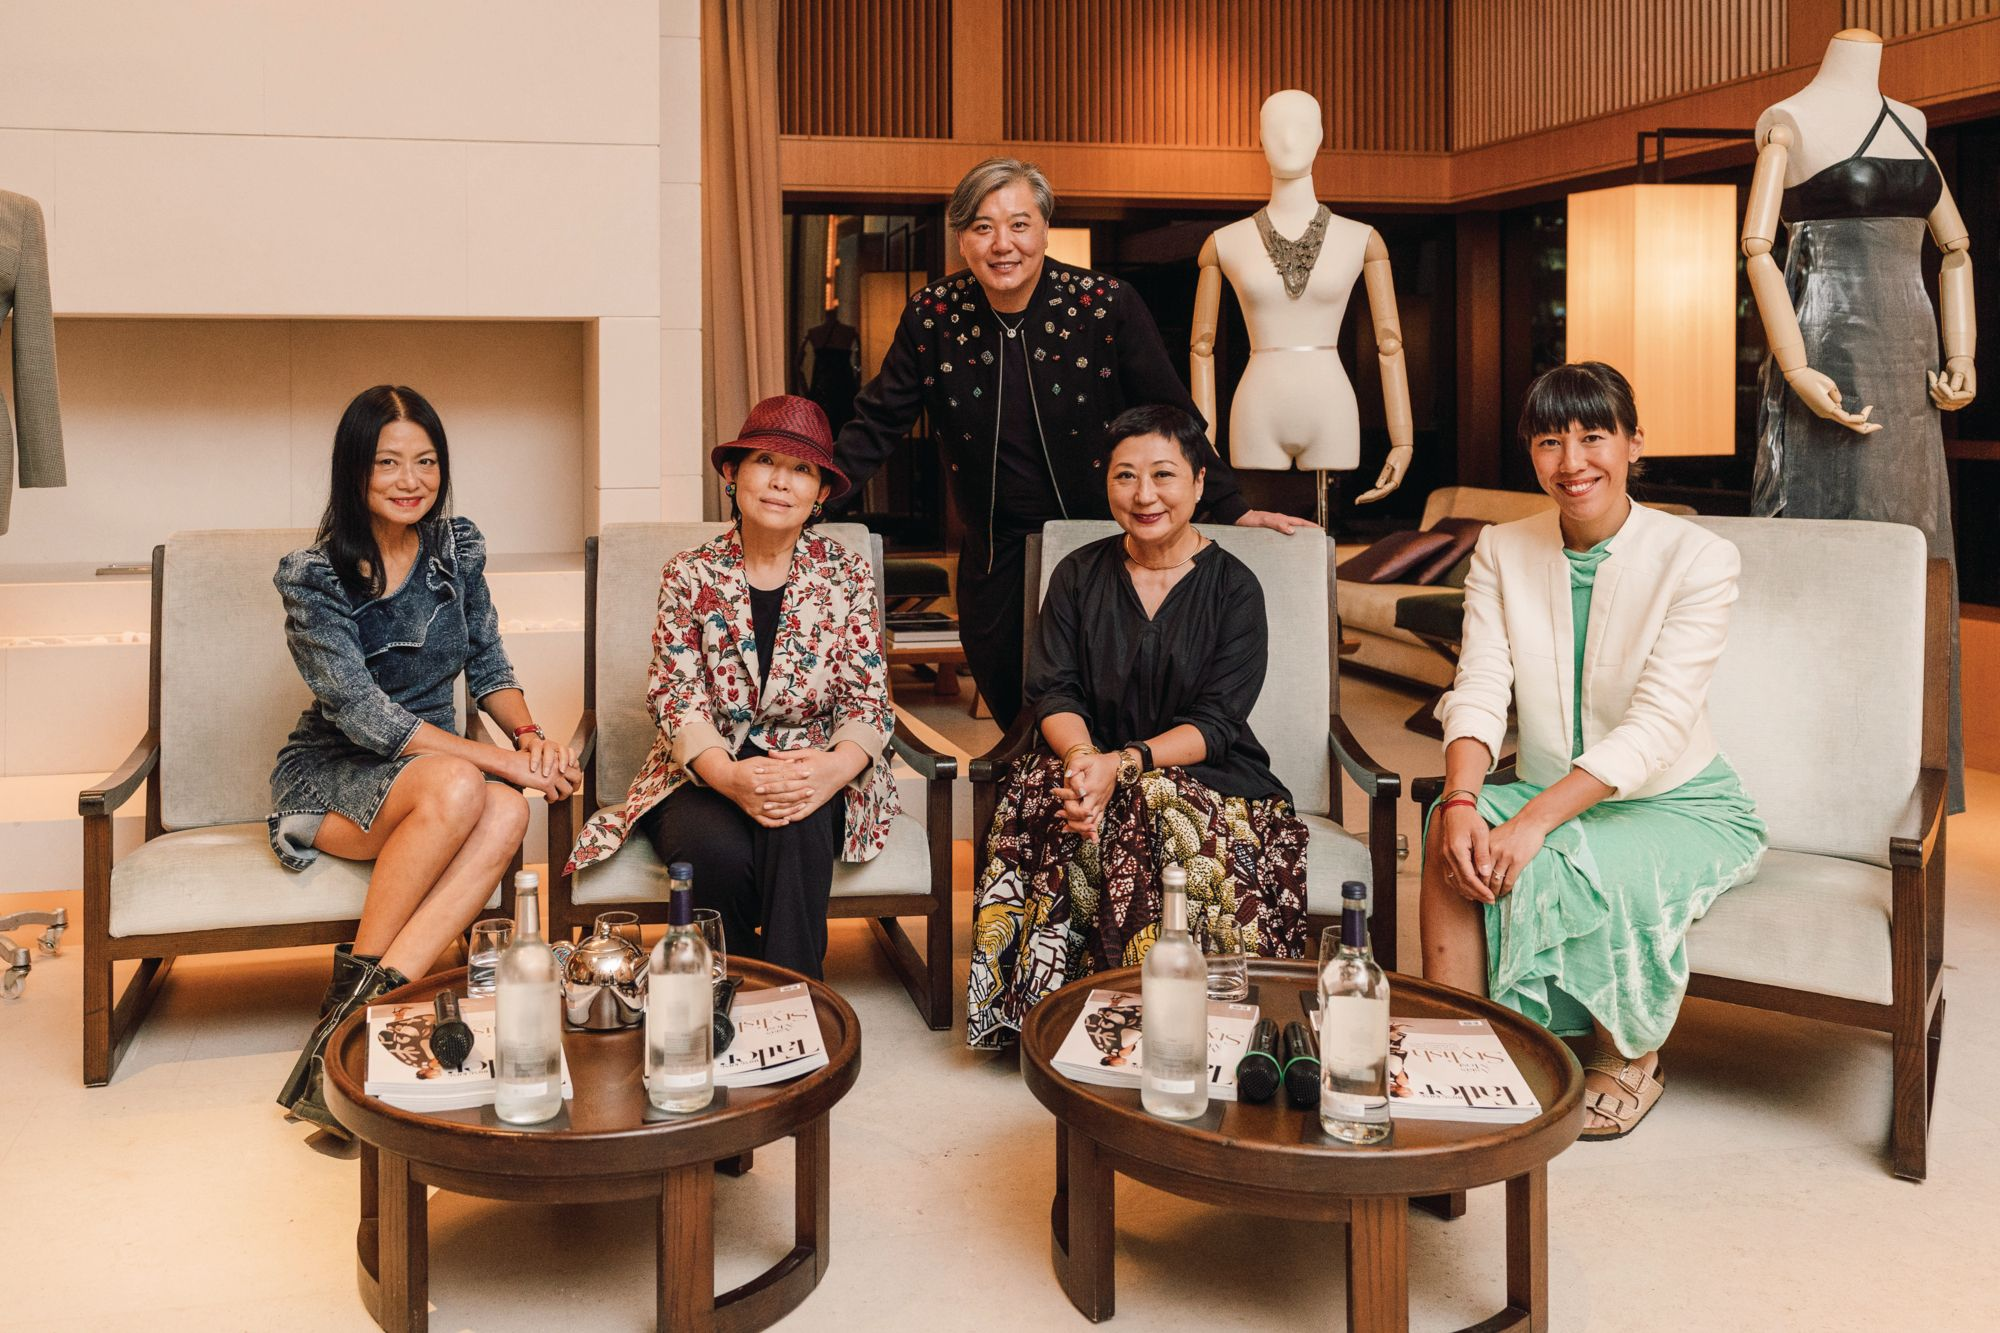 Peter Cheung Hosts A Panel Discussion Featuring Fashion Industry Experts For Tatler's House Stories Session